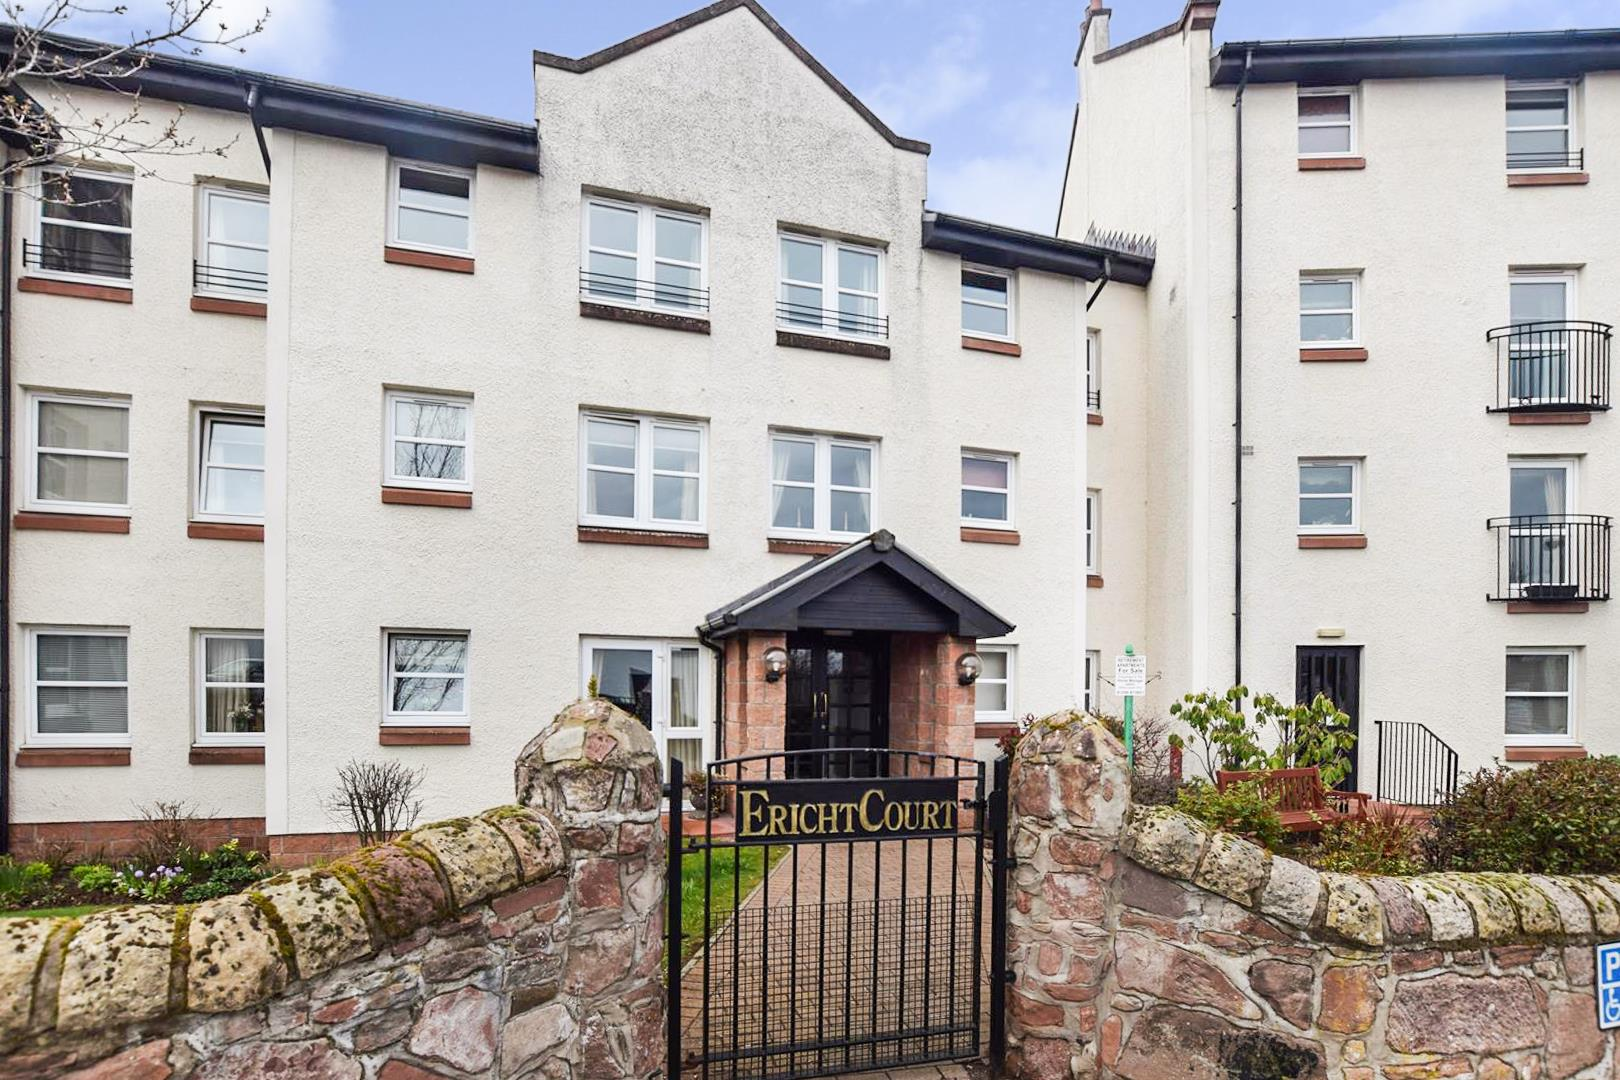 Flat 11, Ericht Court, Upper Mill Street, Blairgowrie, Perthshire, PH10 6AE, UK